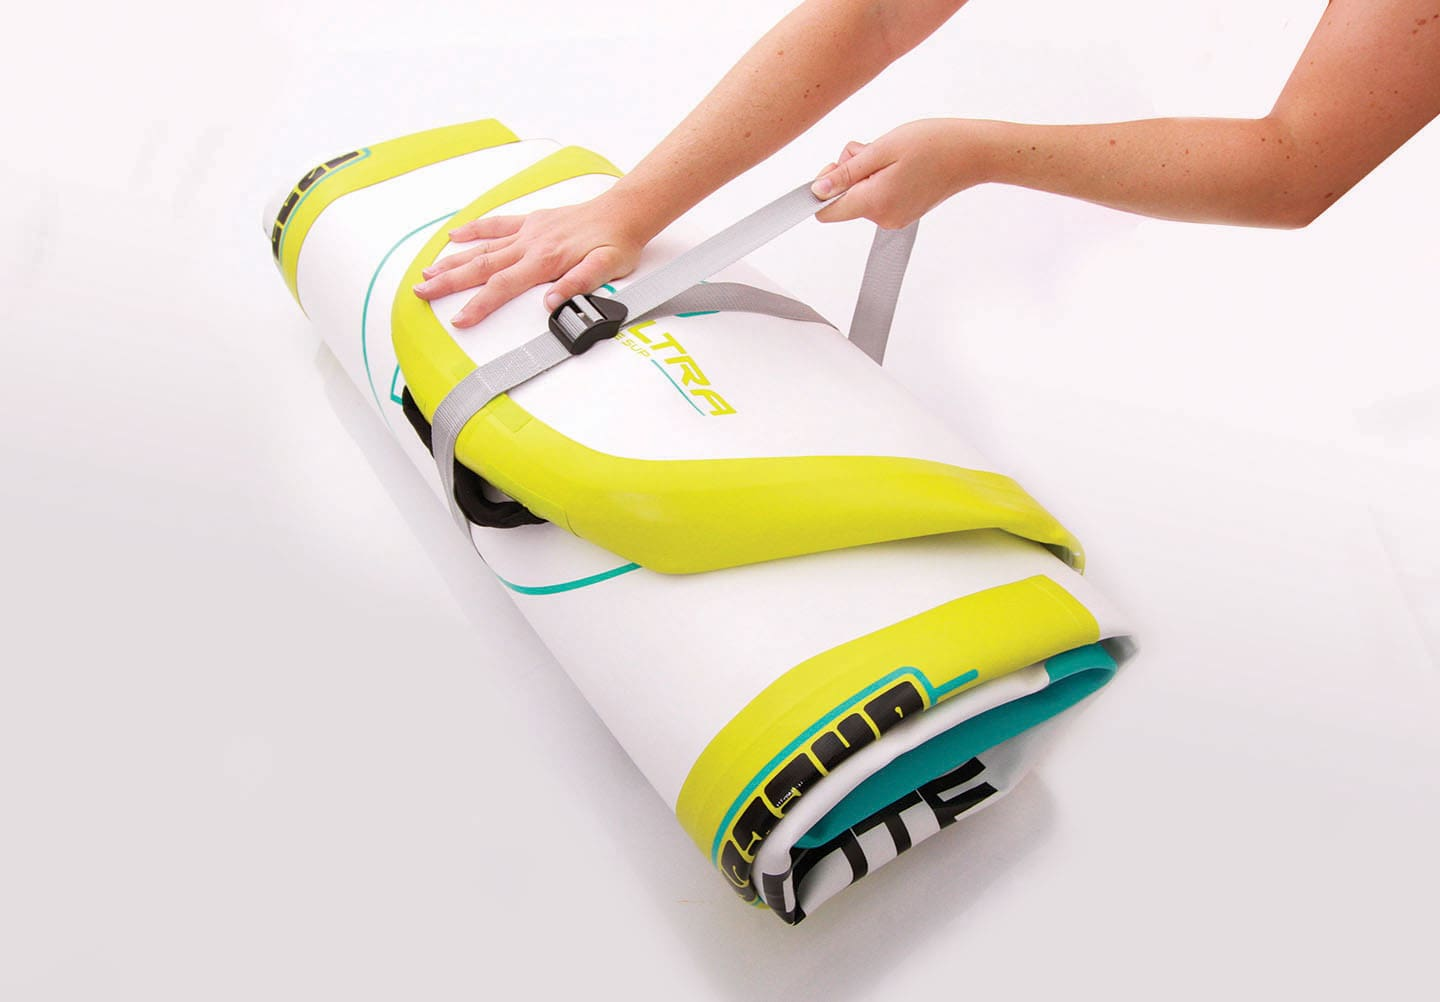 Once fully rolled up, use the compression strap to neatly store the SUP back in the carry bag.